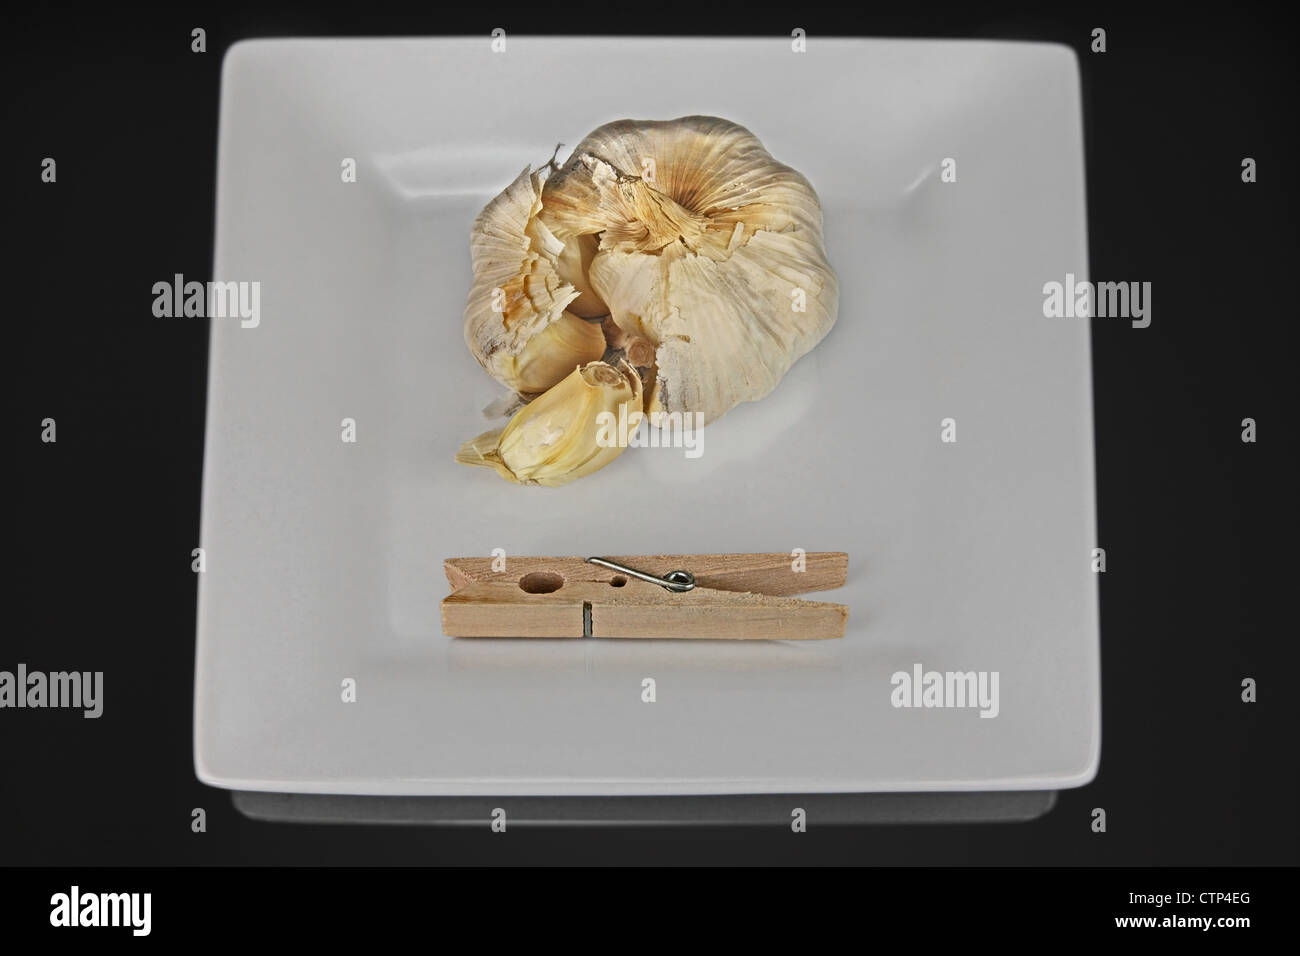 a square dish with cloves of garlic and a clothespin. The clothespin clamp is to hold your nose. Black reflective - Stock Image